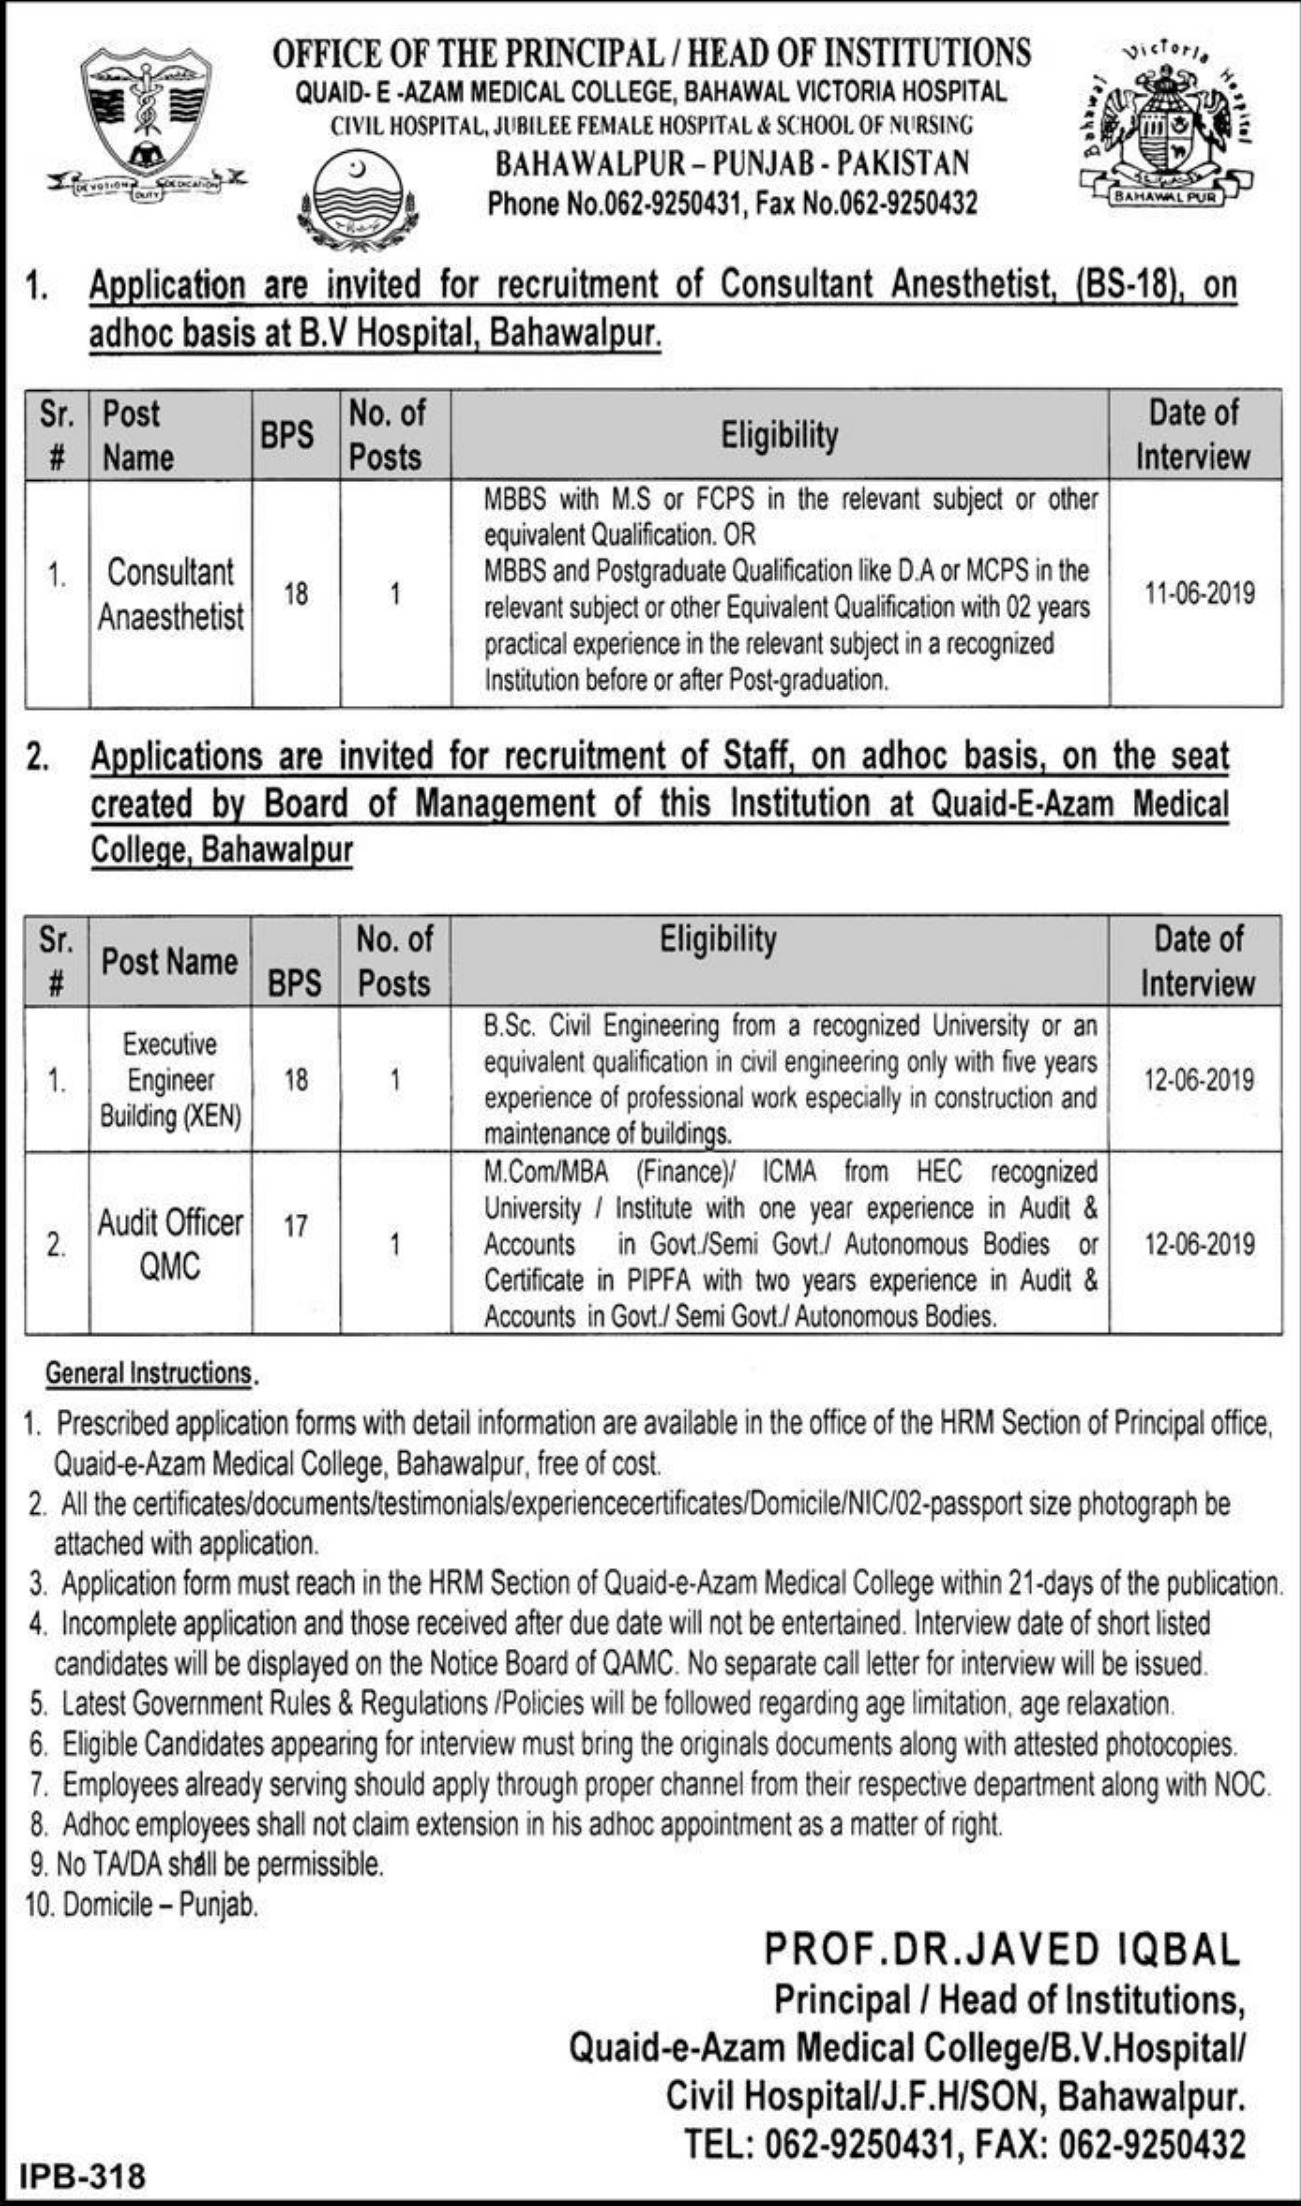 Quaid-e-Azam Medical College Bahawal Victoria Hospital Bahawalpur Jobs 2019 Latest